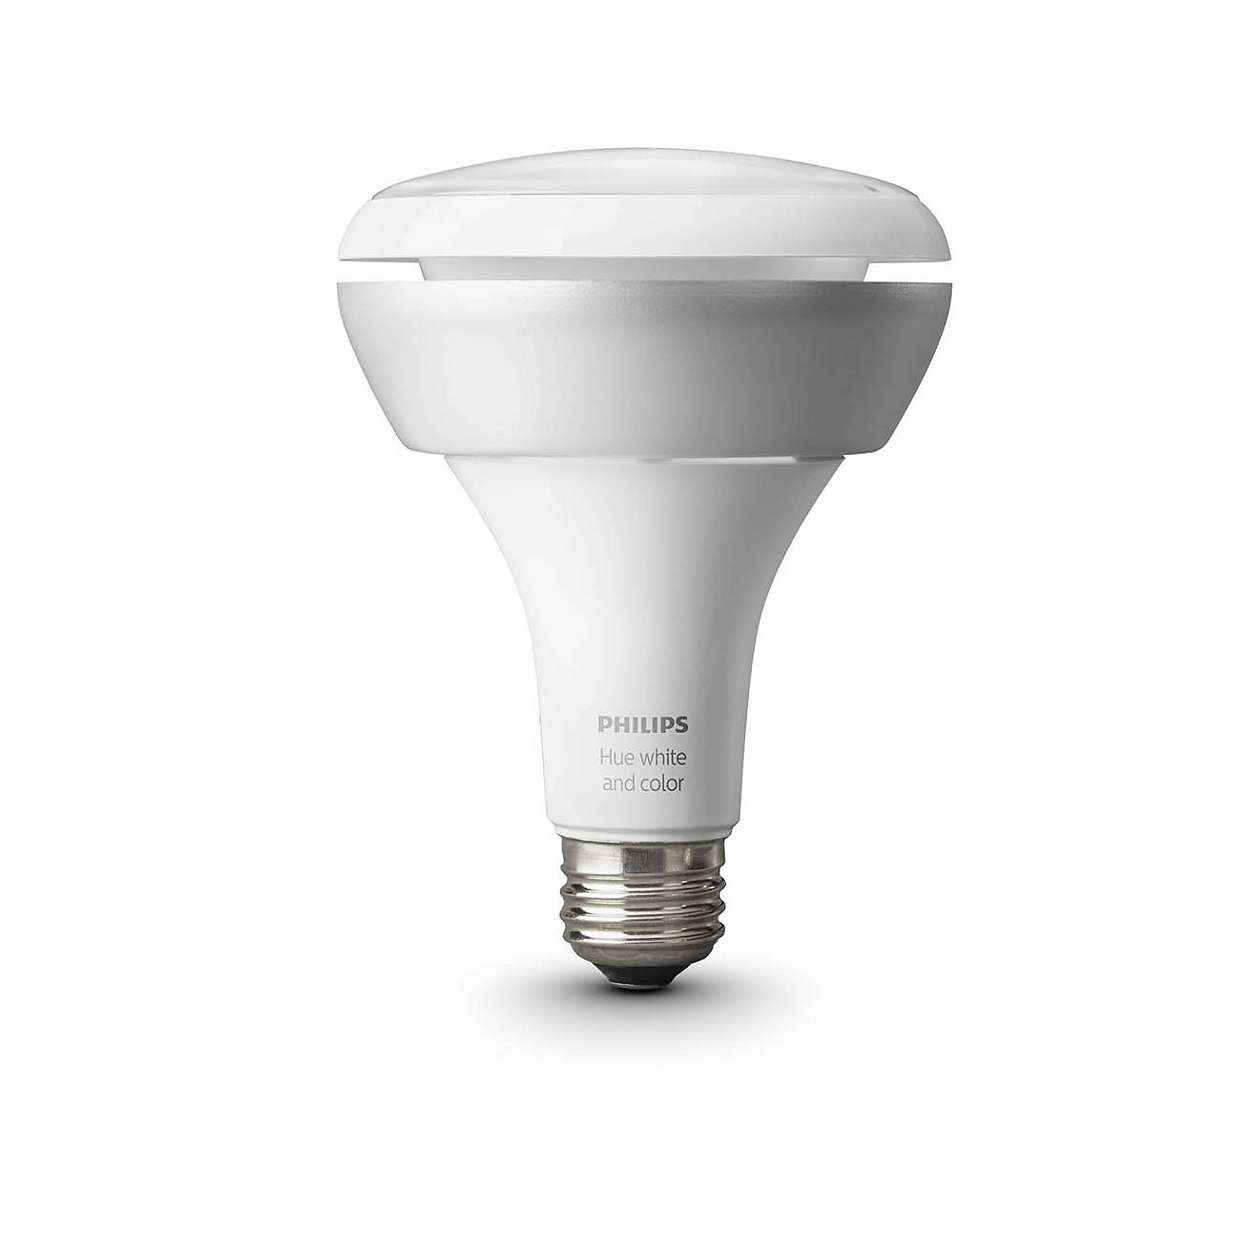 Philips Hue Br30 Philips Hue White And Color Ambiance Br30 Smart Light Bulb 65w Led 1 Pack